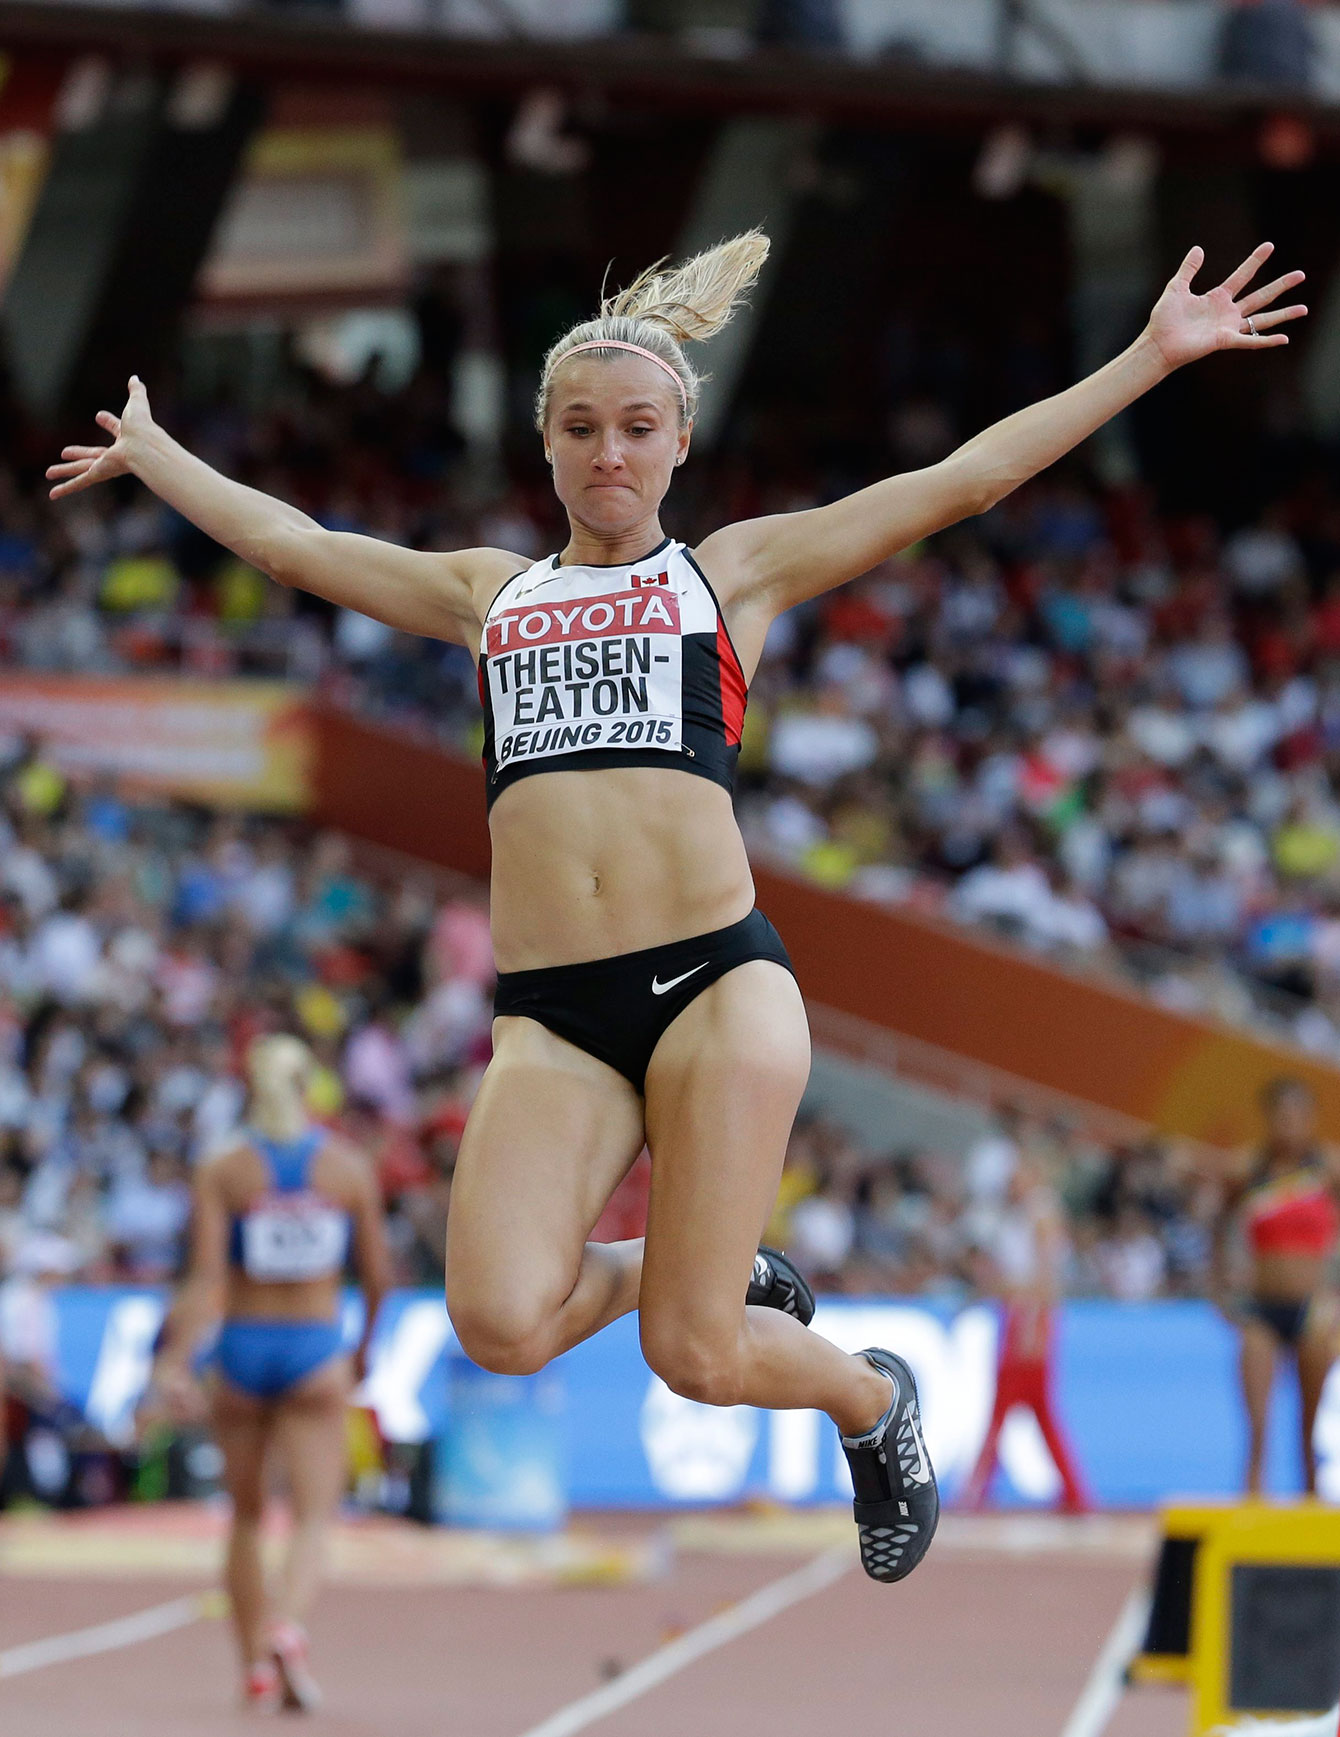 Brianne Theisen-Eaton's long jump of 6.55m at Beijing 2015 put her back in medal contention at the World Championships on August 23, 2015.